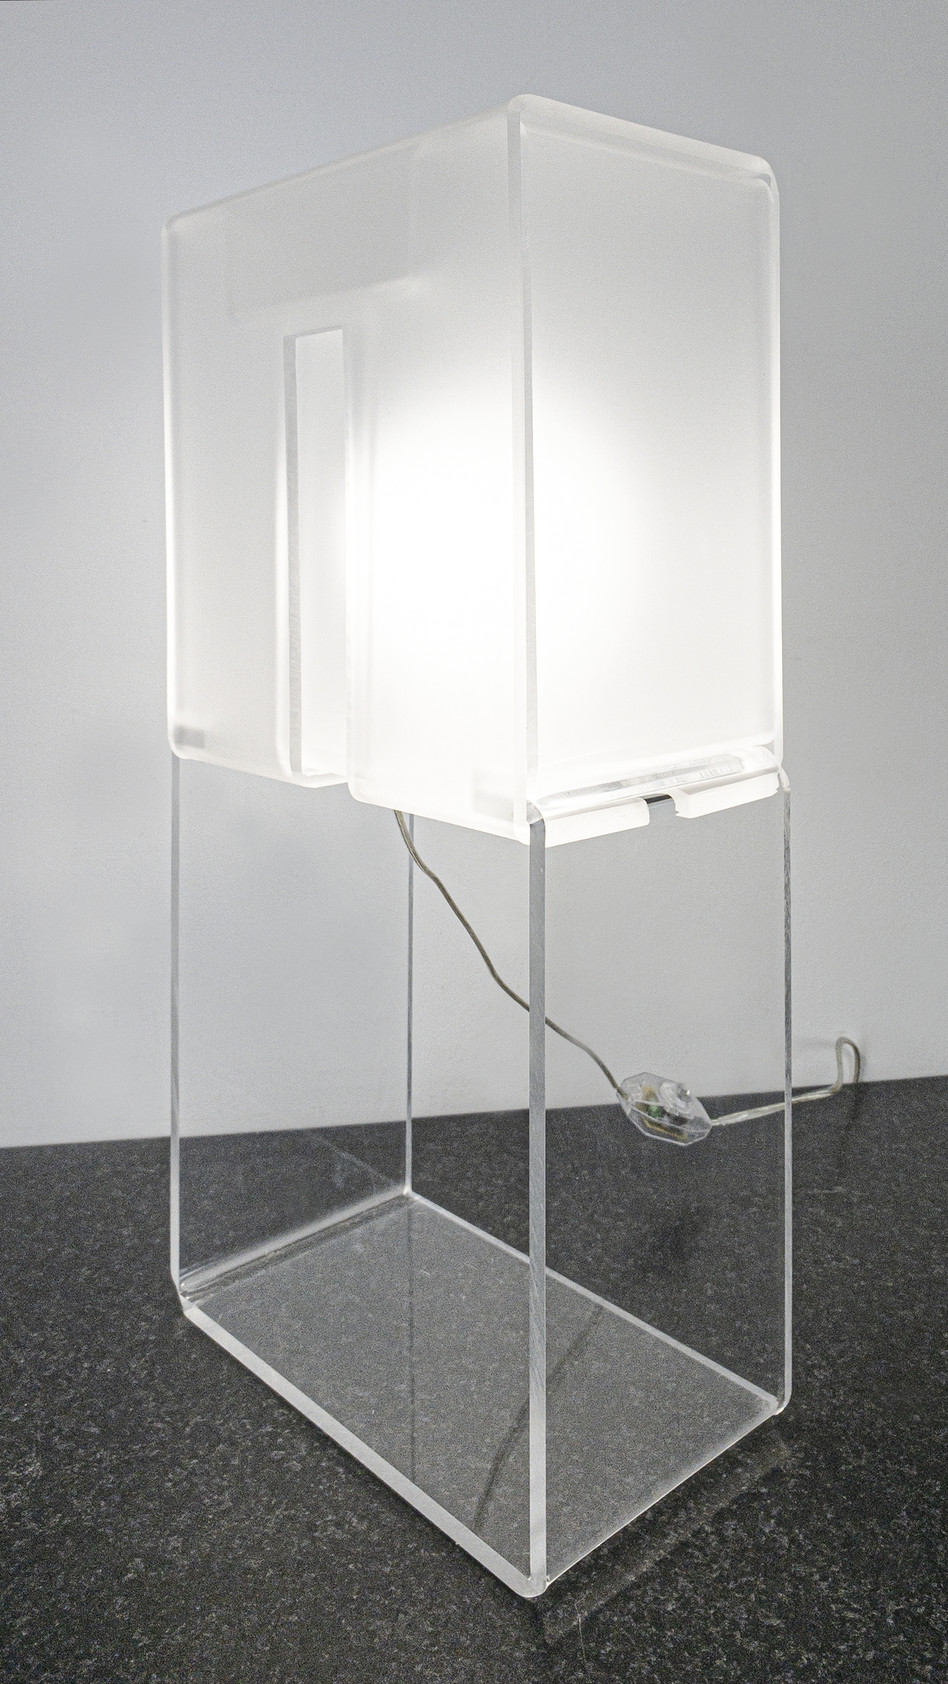 Lamp with window